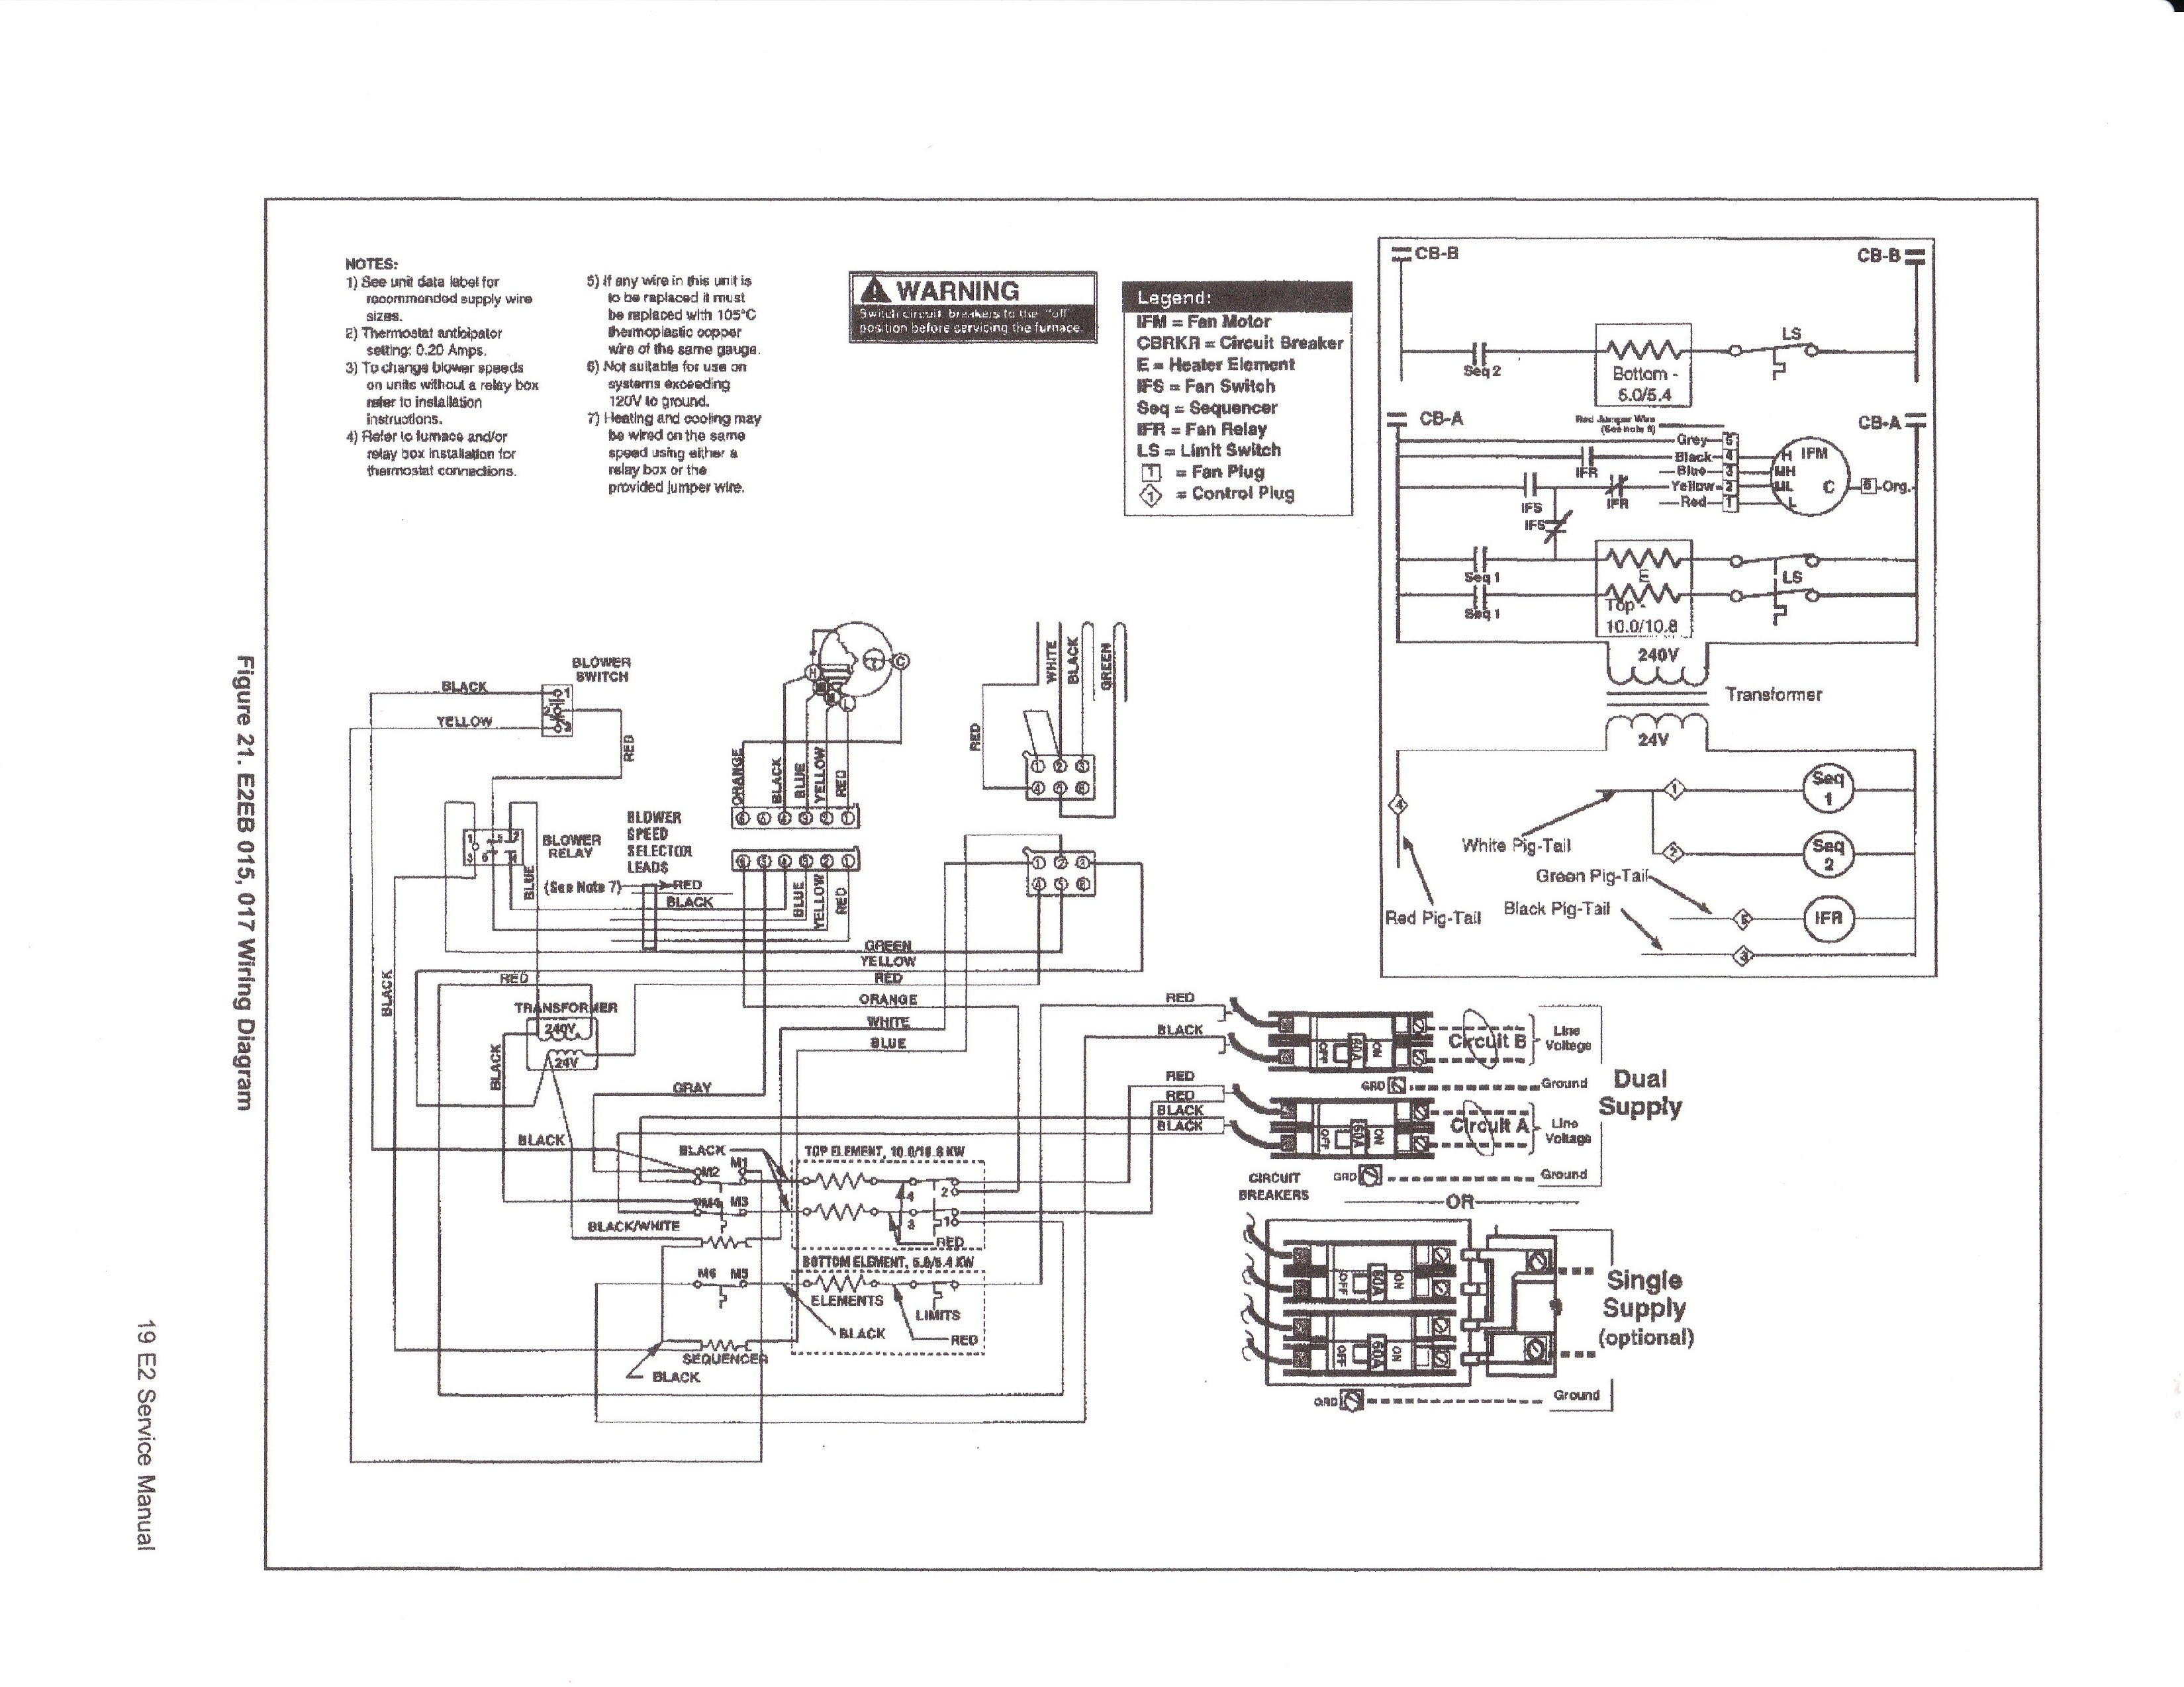 Wiring Diagram For Heil Furnace from wholefoodsonabudget.com